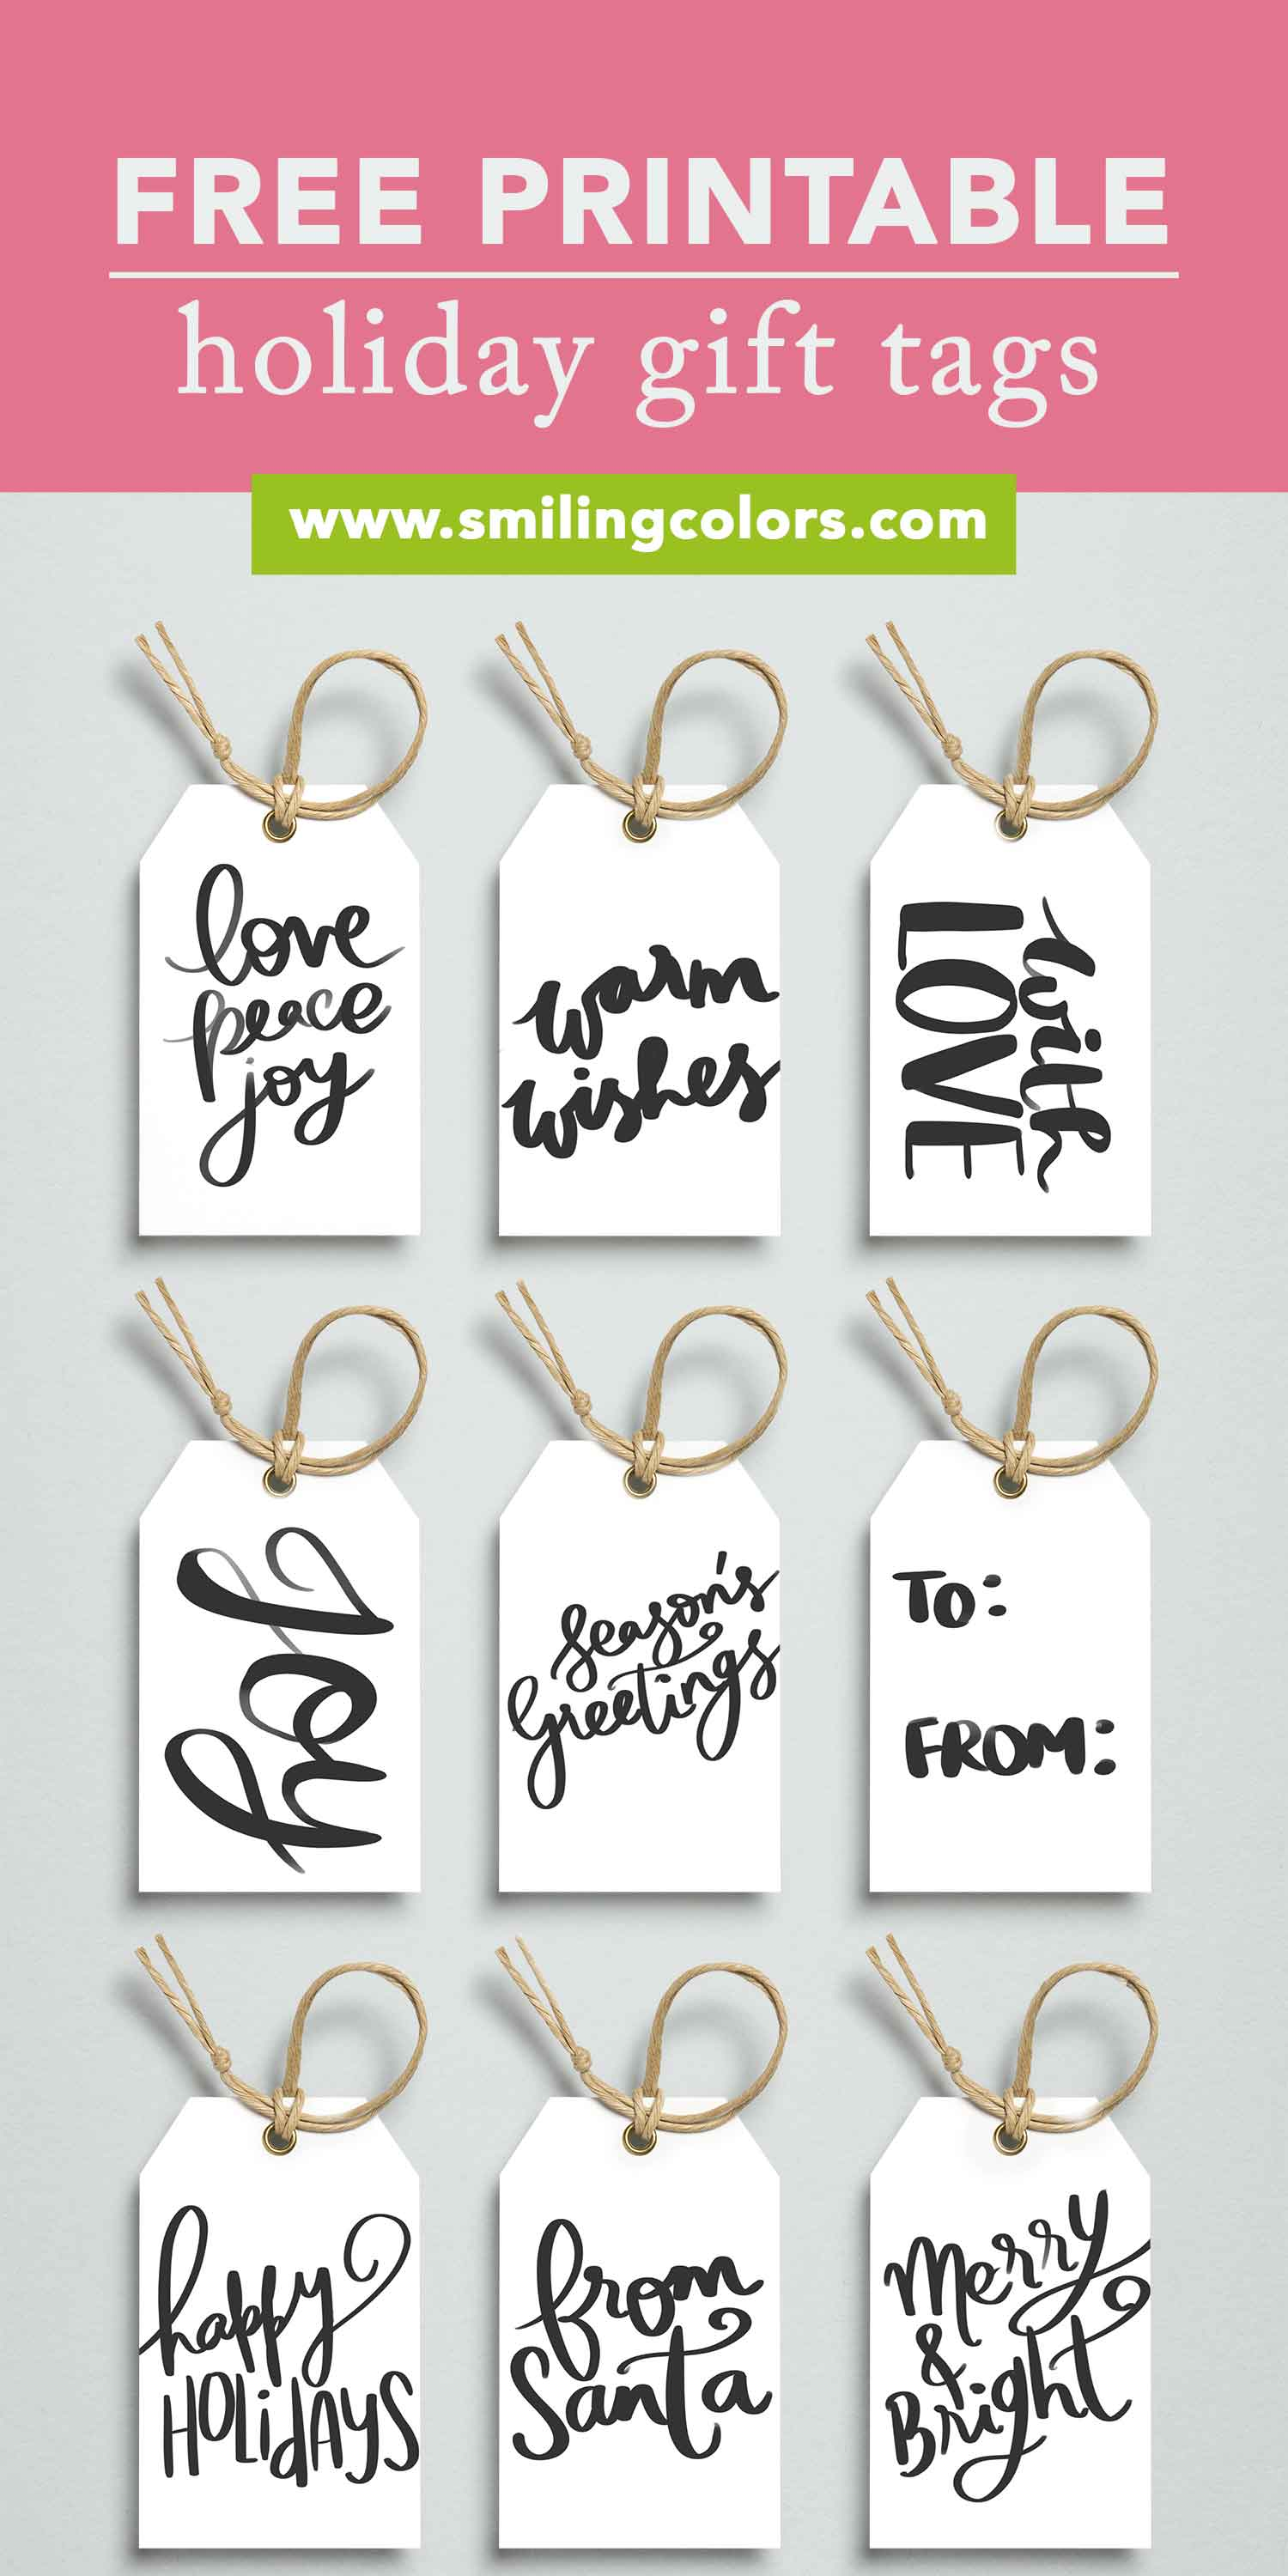 image relating to Holiday Gift Tags Printable titled Printable Getaway present tags, Free of charge towards down load at the moment - Smitha Katti